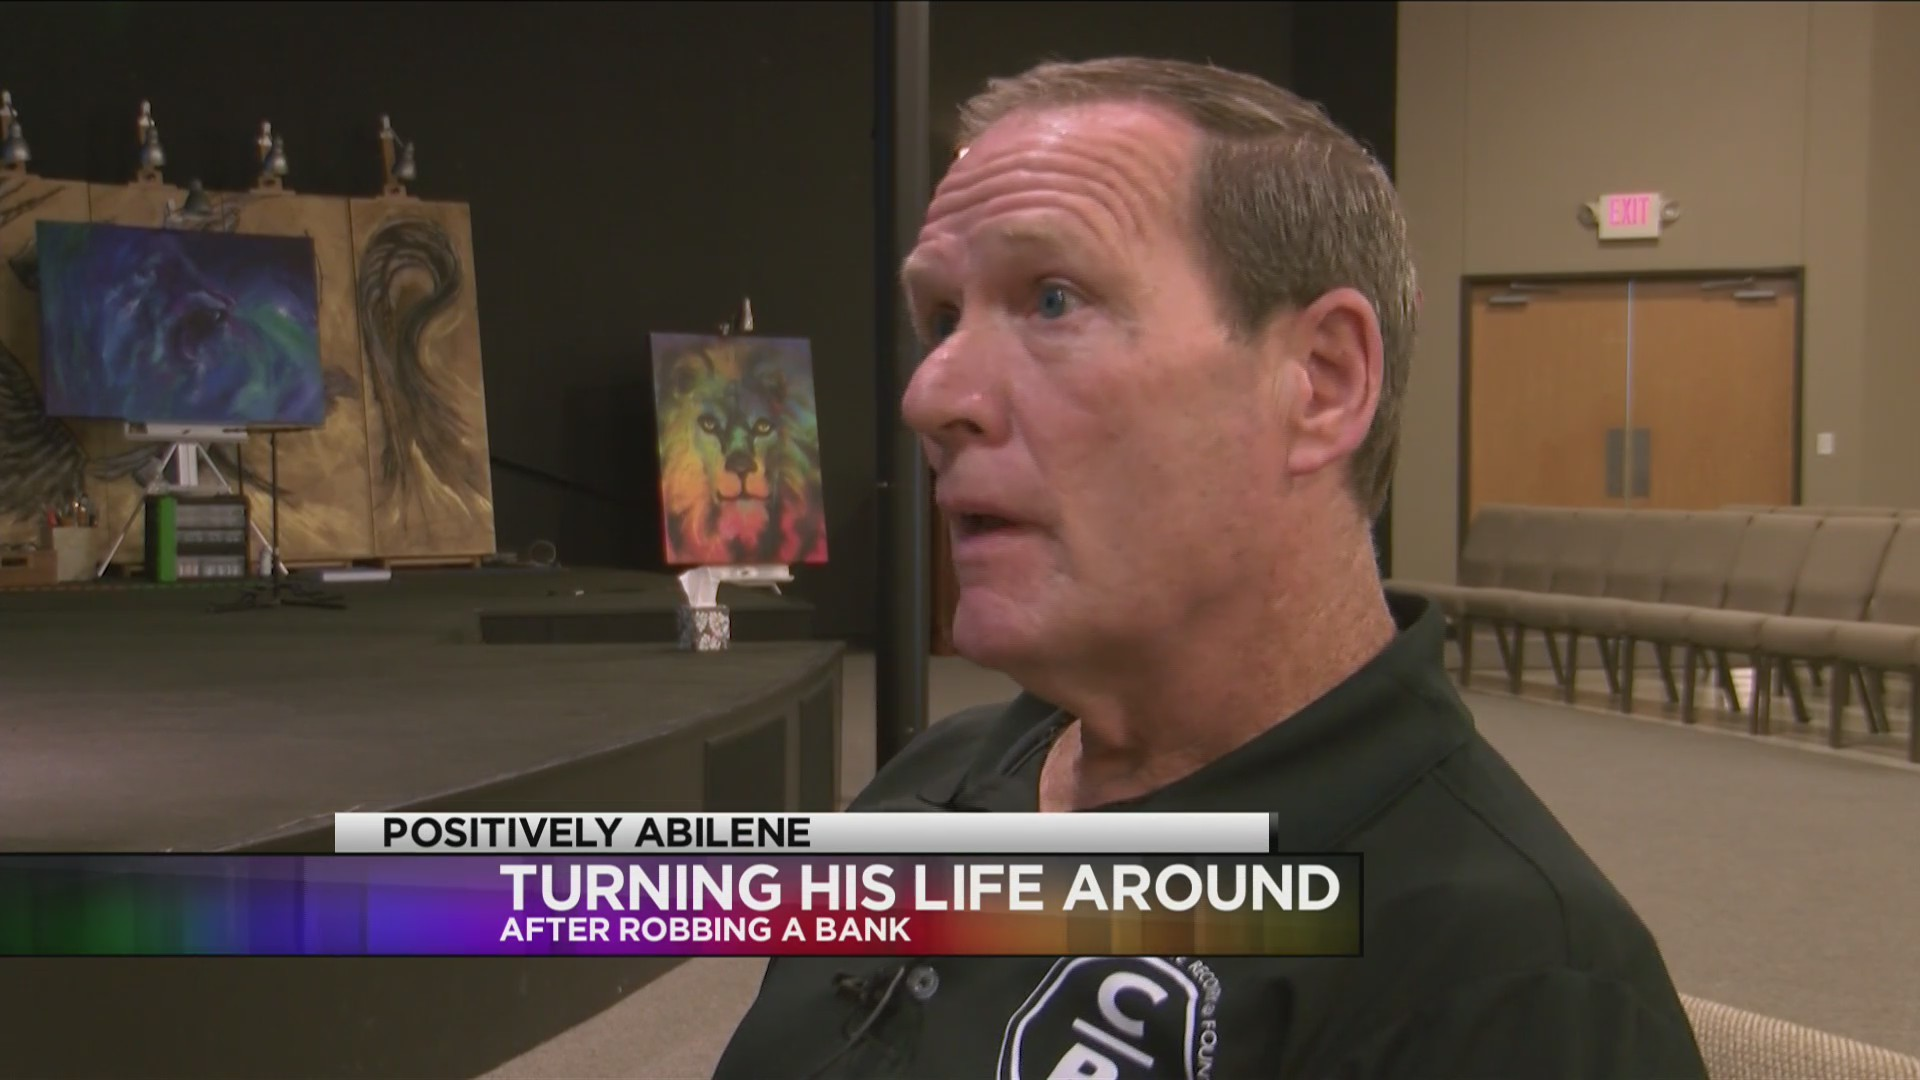 Abilene man makes a life change after attempting to rob a bank